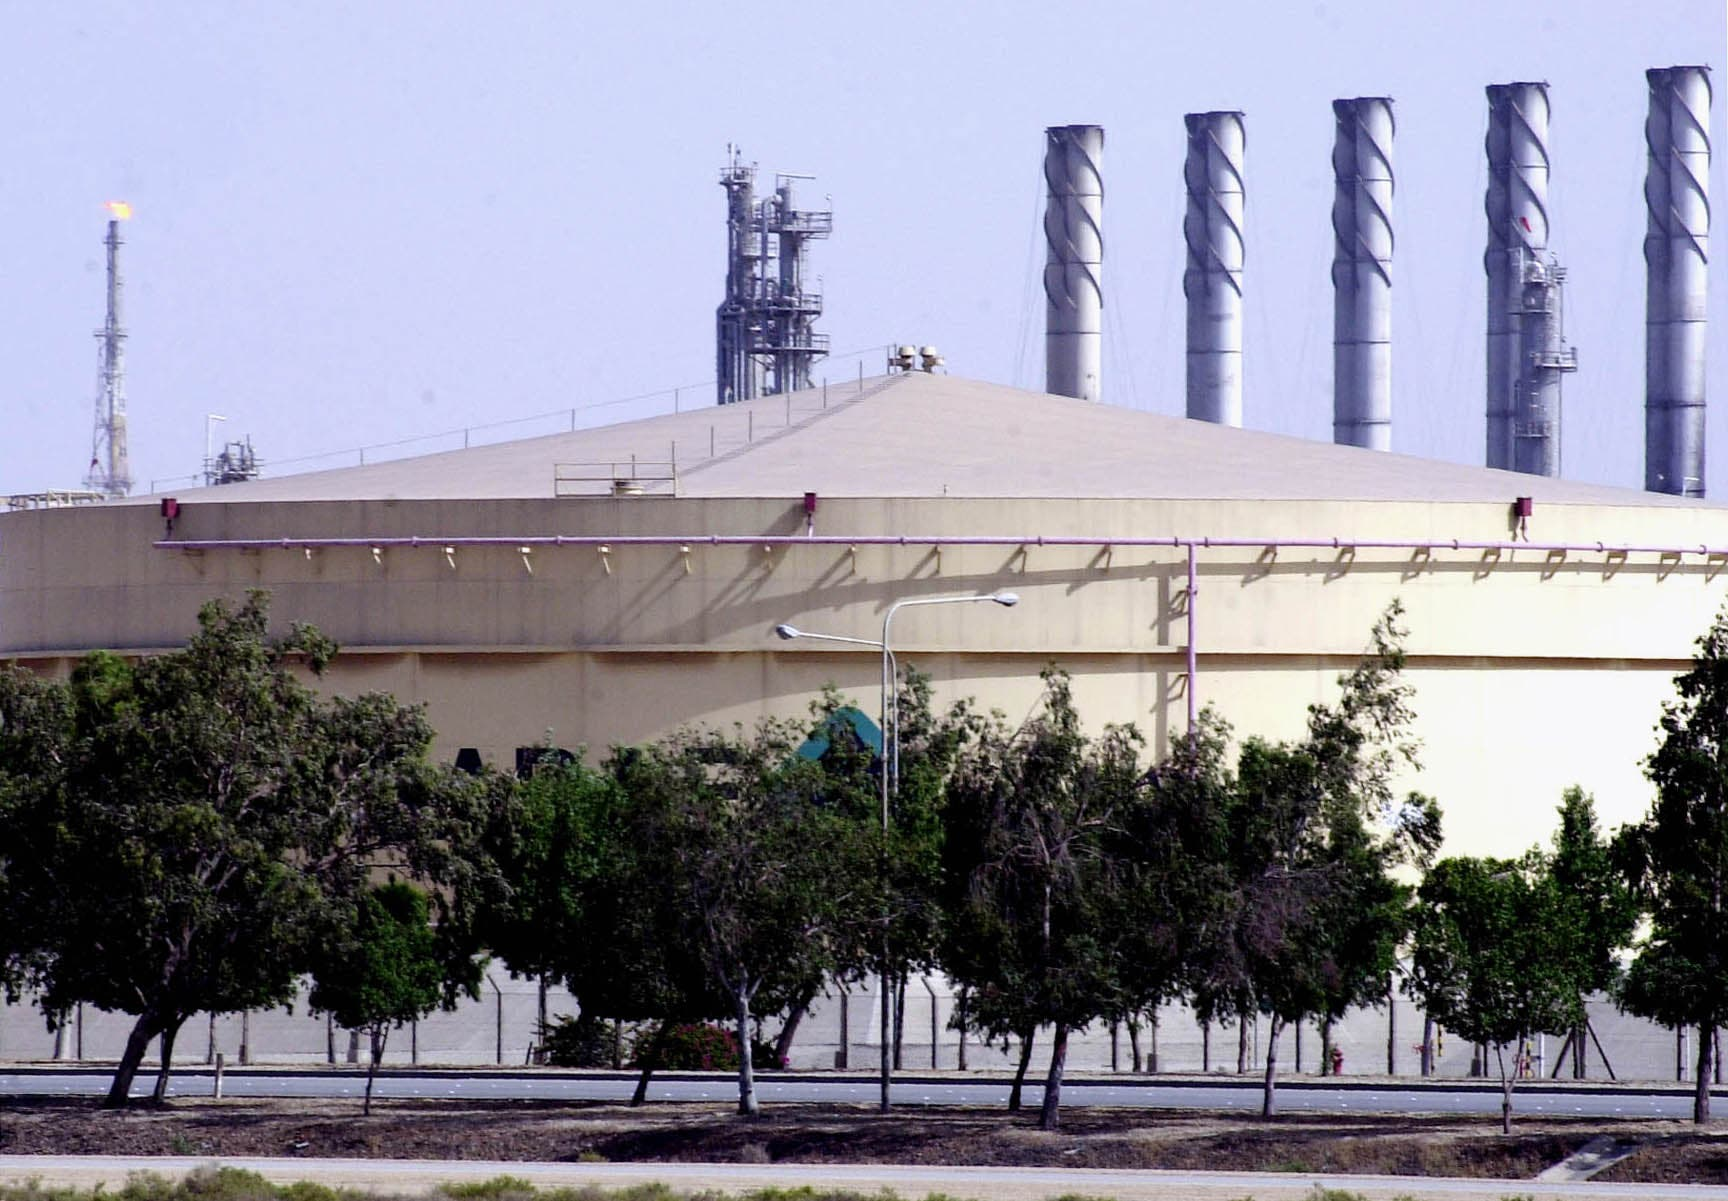 A fuel storage tank at the Saudi Aramco Shell oil refinery in Jubail, Saudi Arabia. (File Photo: AP)